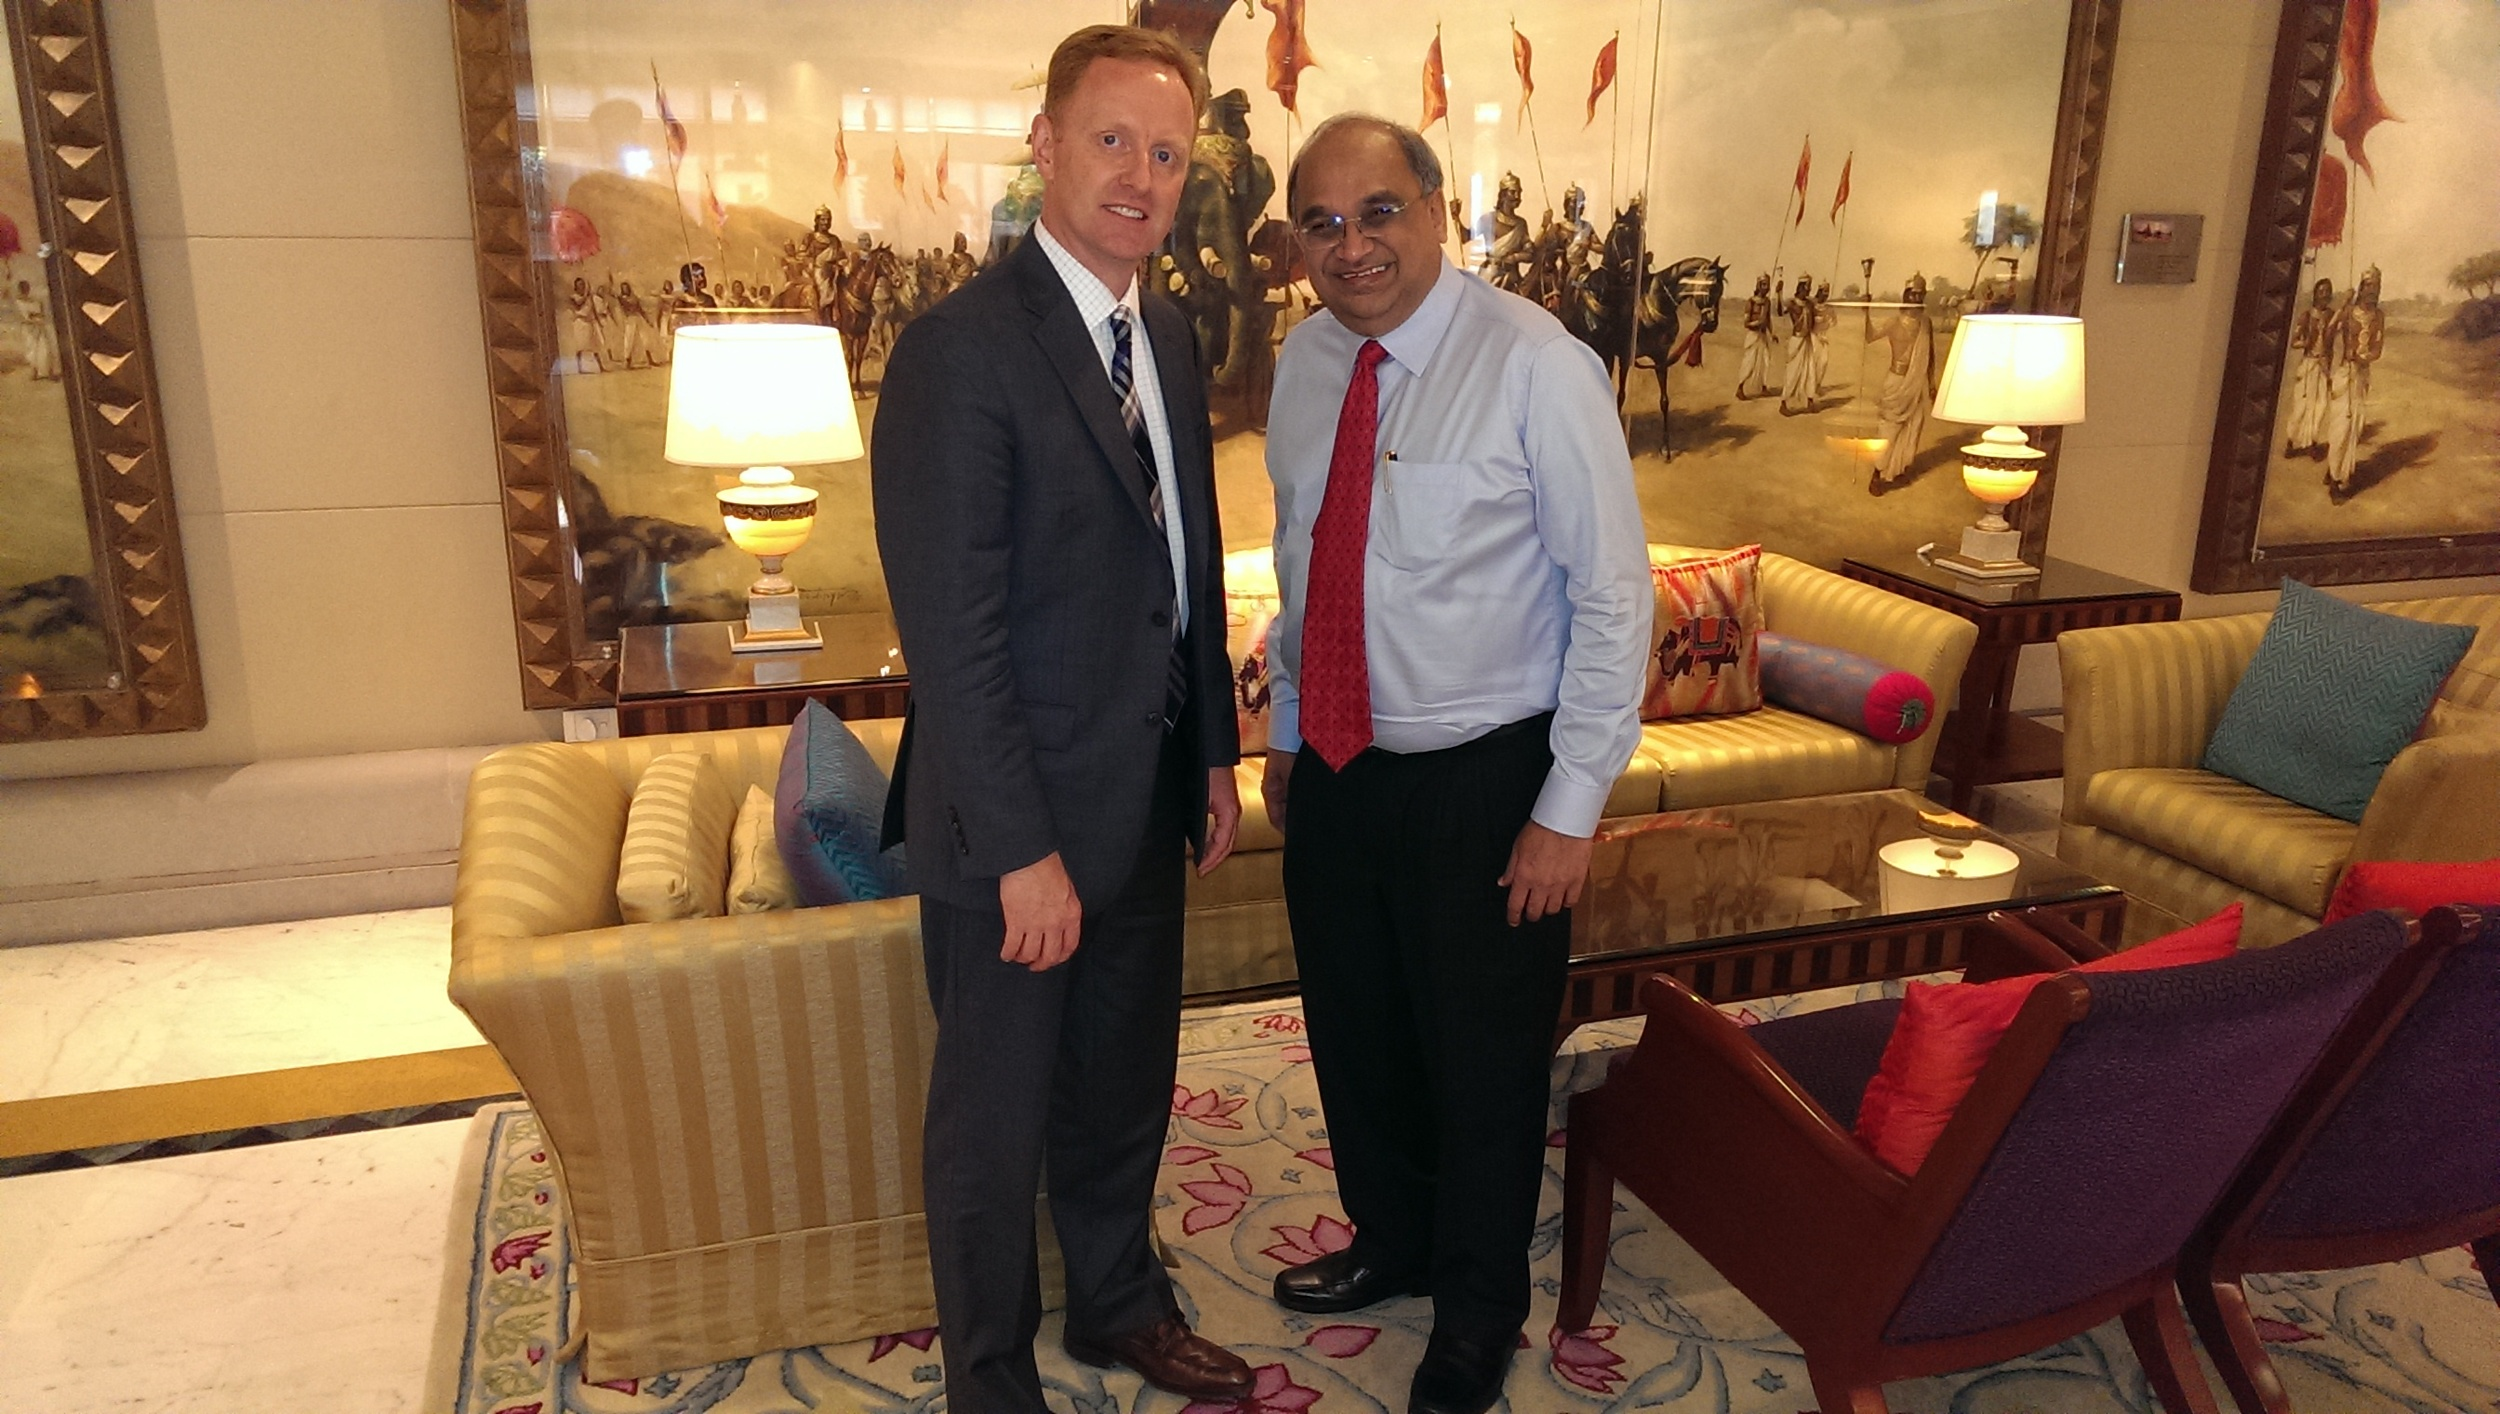 Ryan Hessenthaler with Bharat Shah, Executive Director of ASK Investment Managers